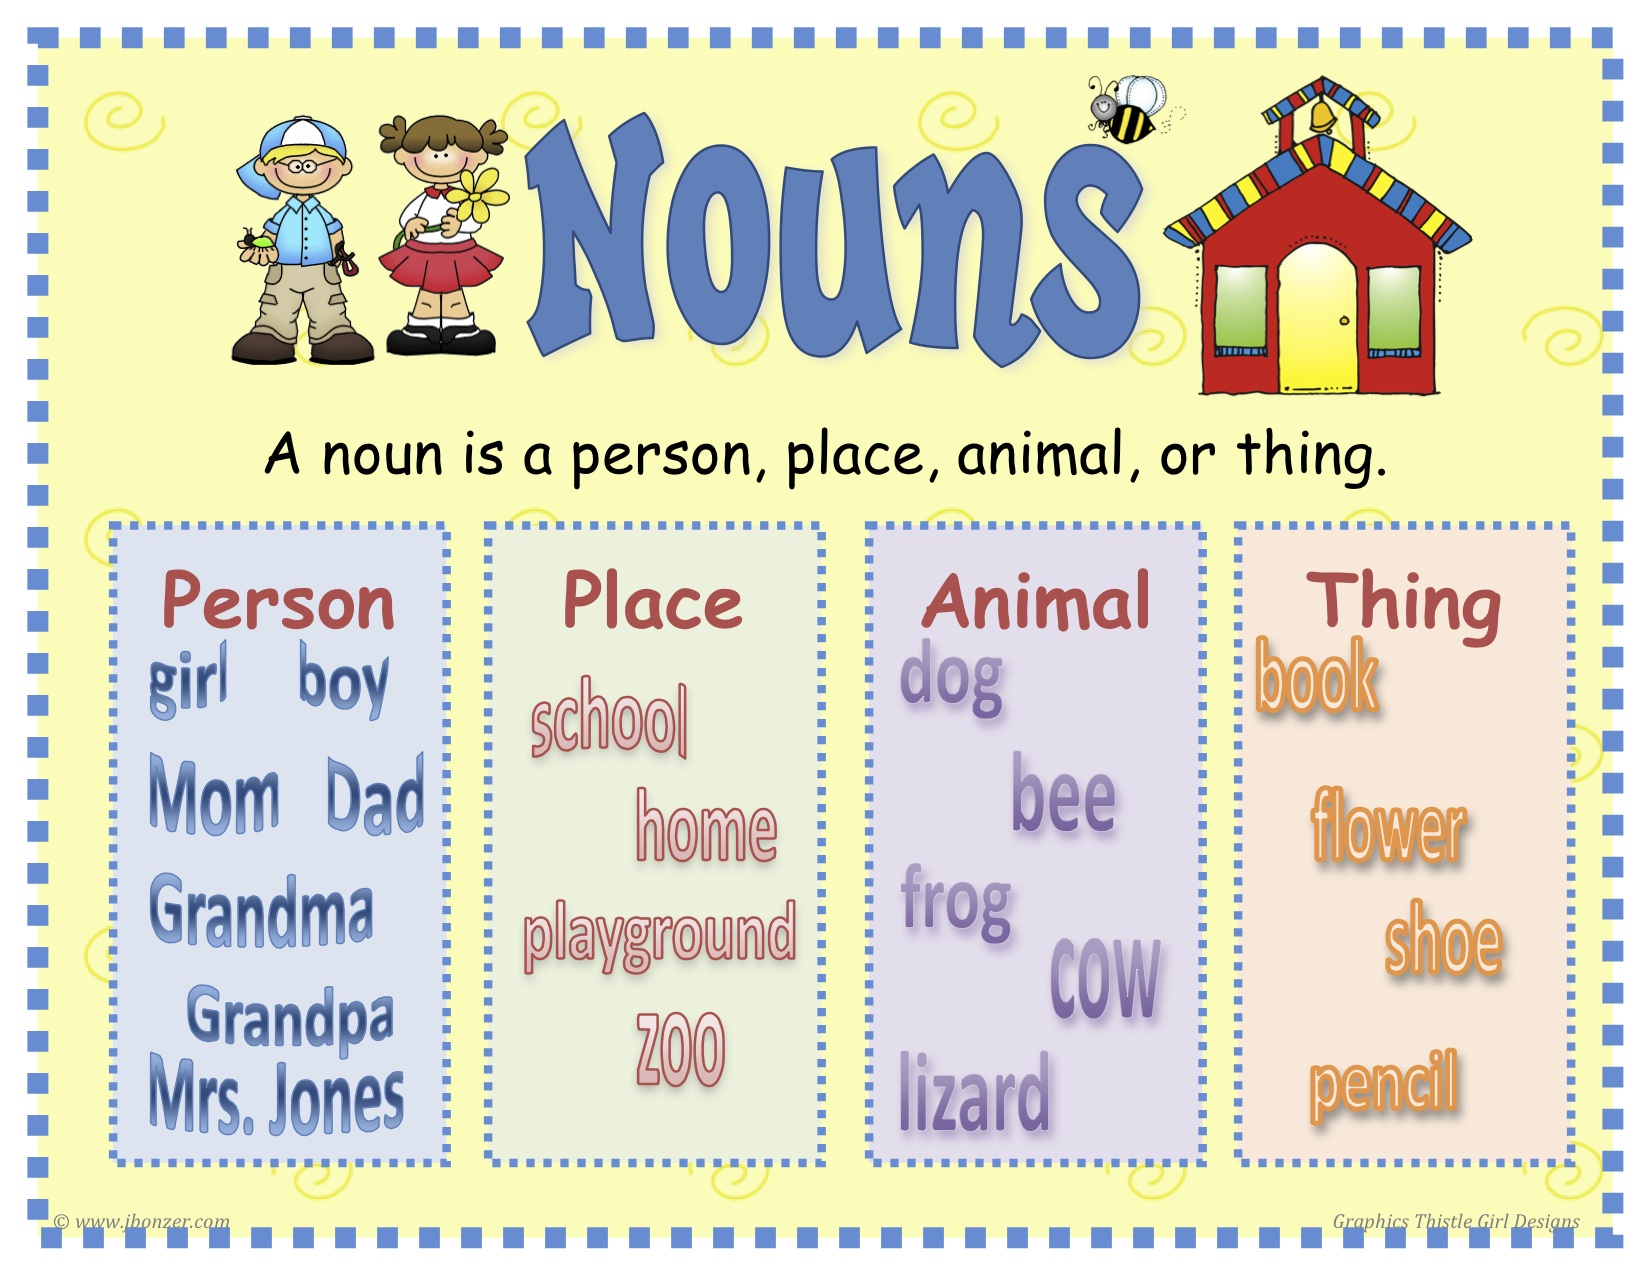 Worksheet Noun Pictures For Kids common nouns clipart kid nounsposterbyjudybonzer nounsposterbyjudybonzer